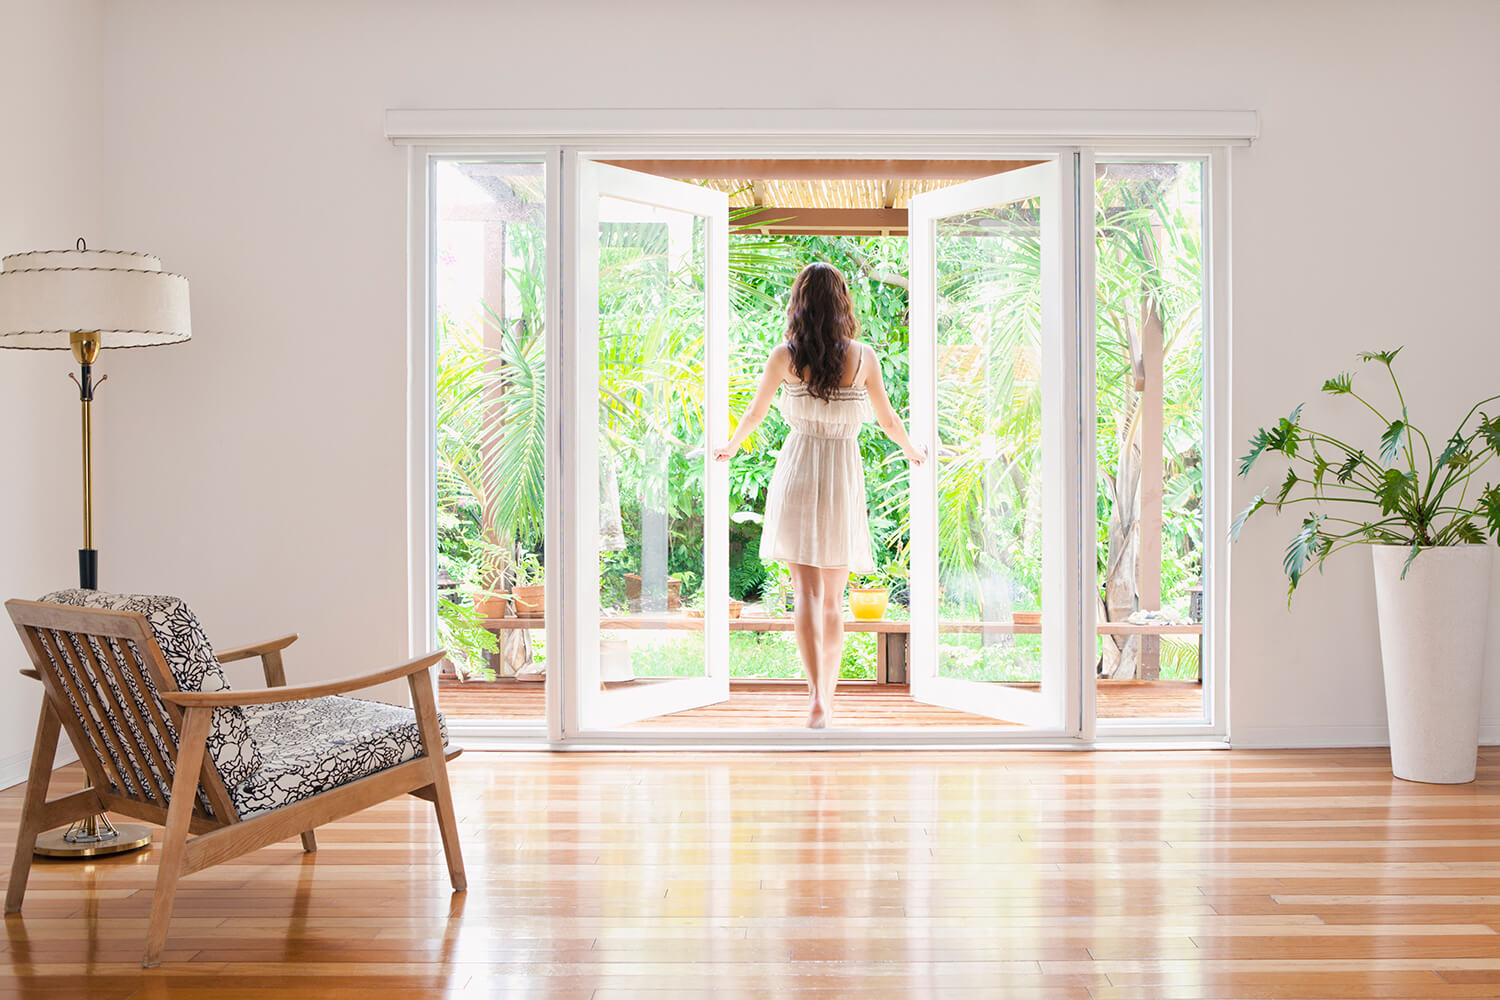 Keep Cool This Summer with Double Glazed Windows